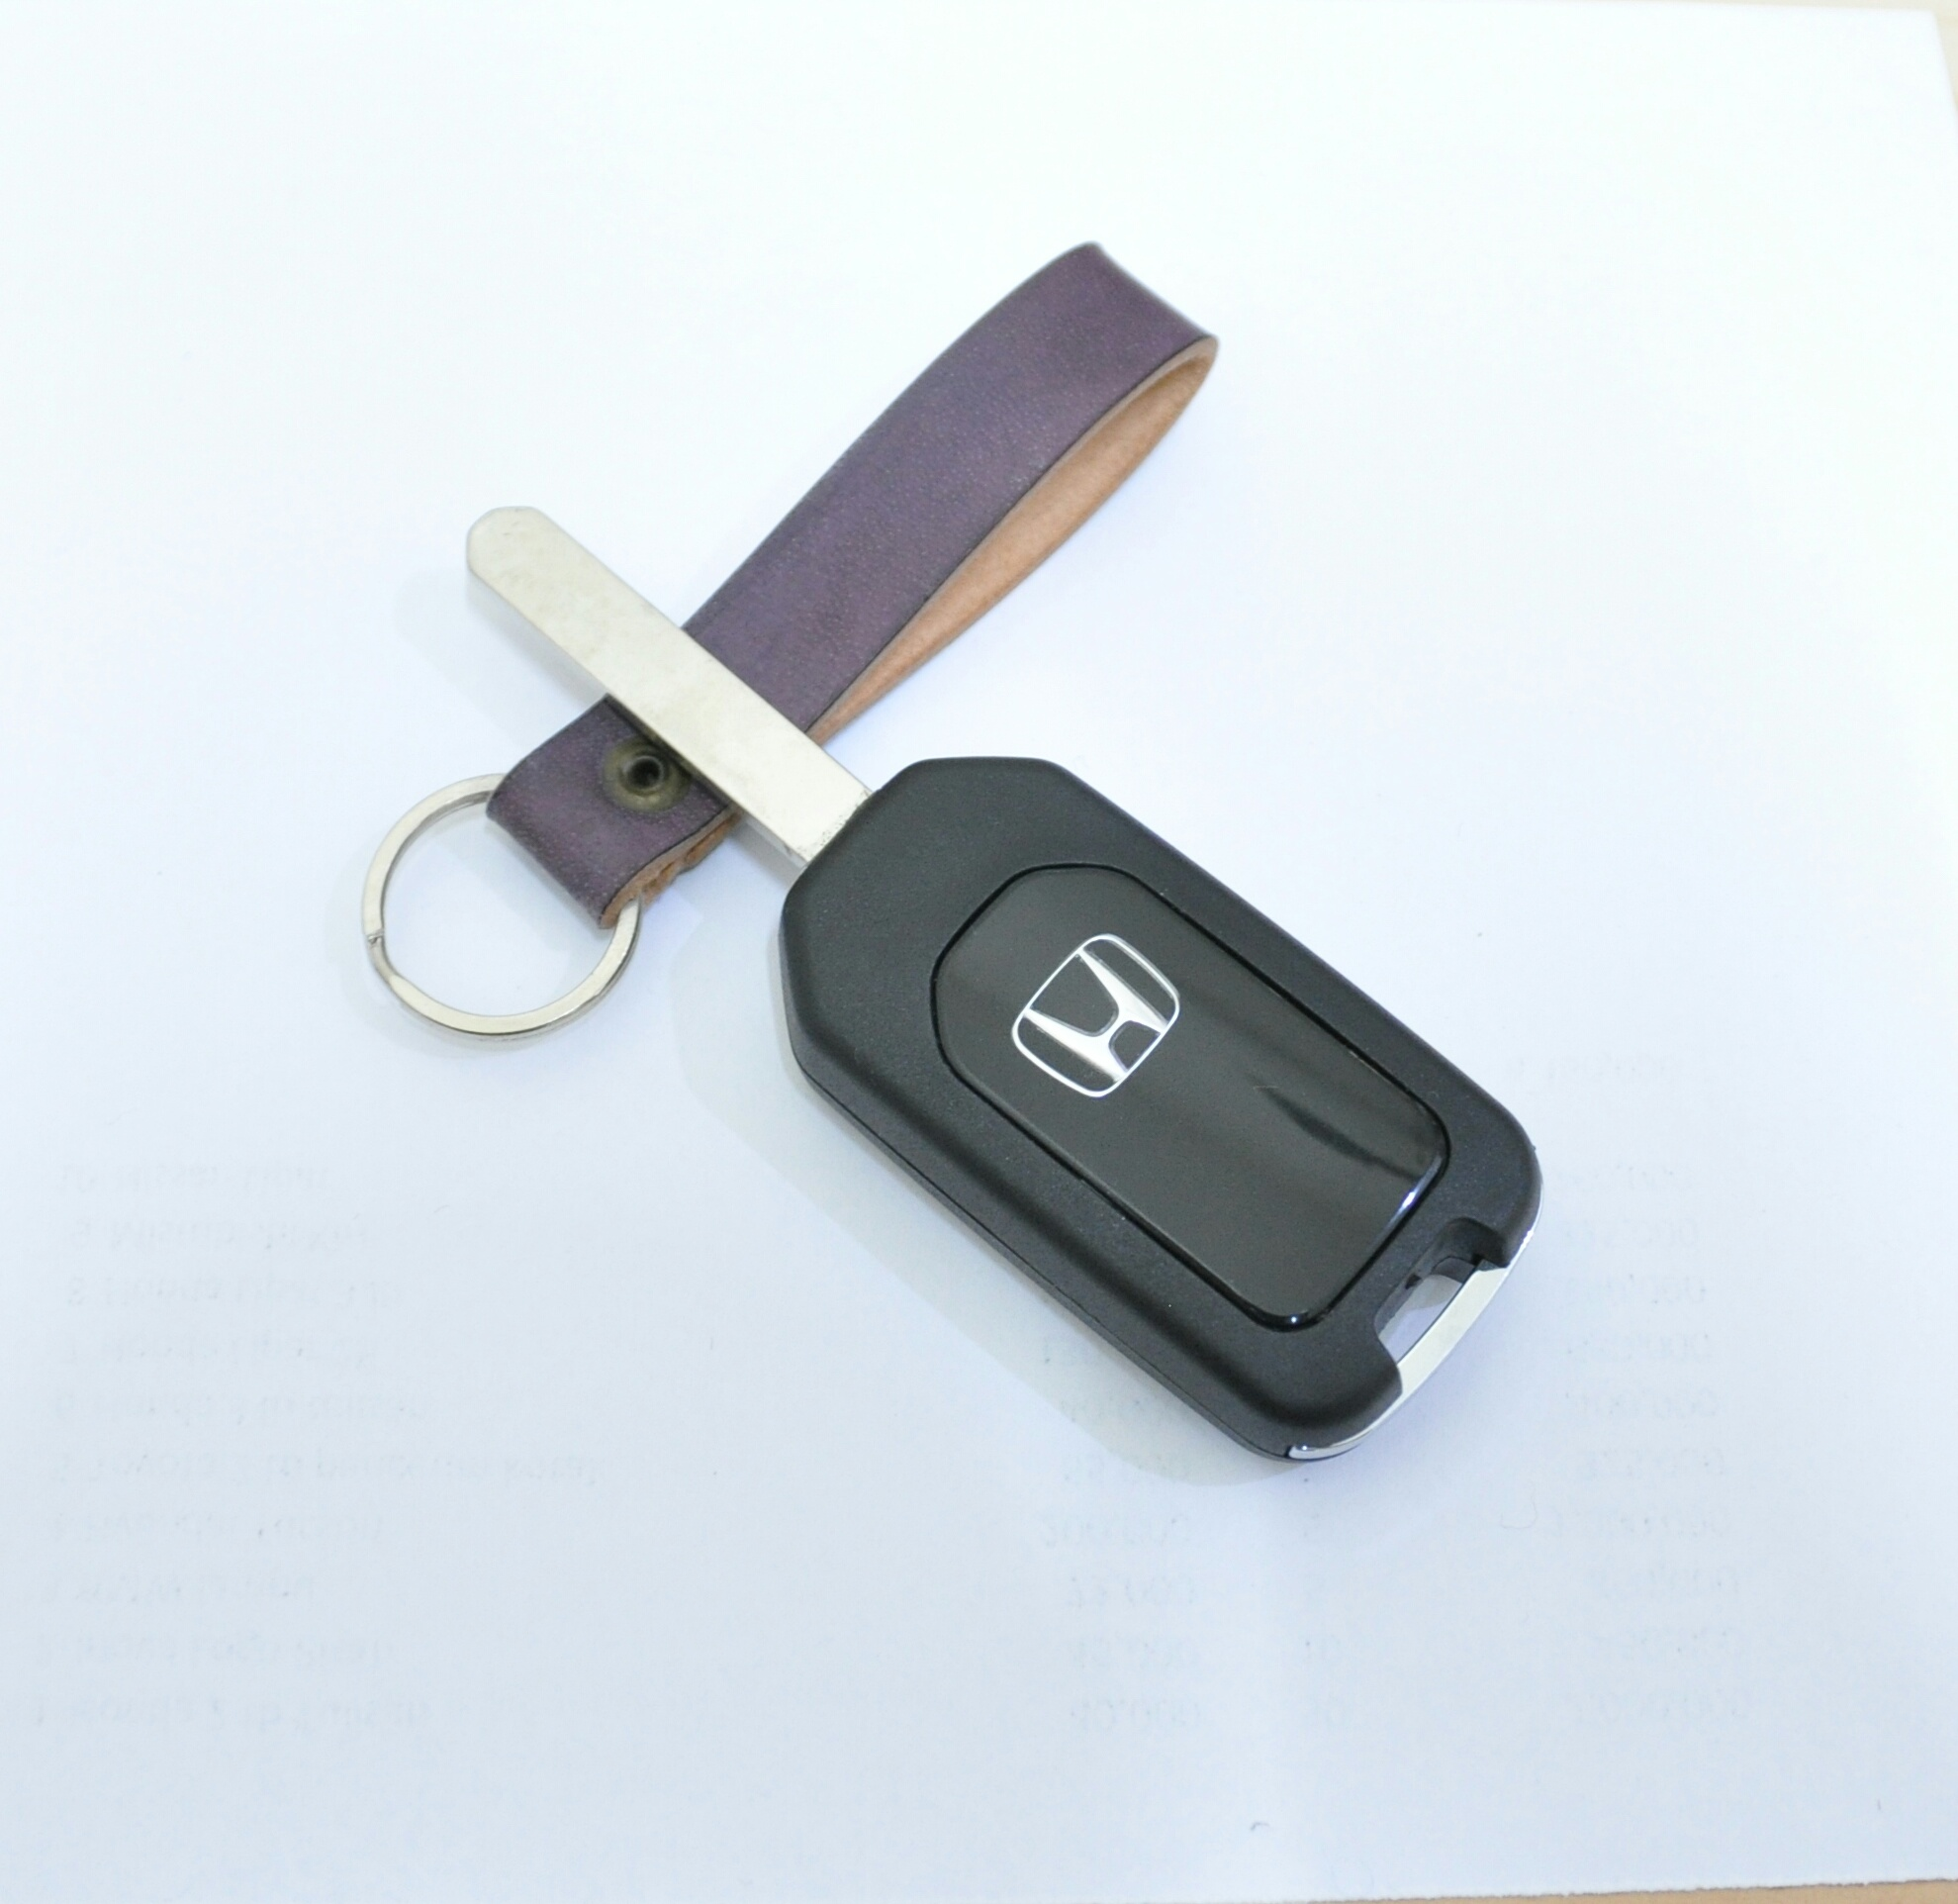 flipkey honda kunci lipat jazz rs mobillo freed honda crv city brio